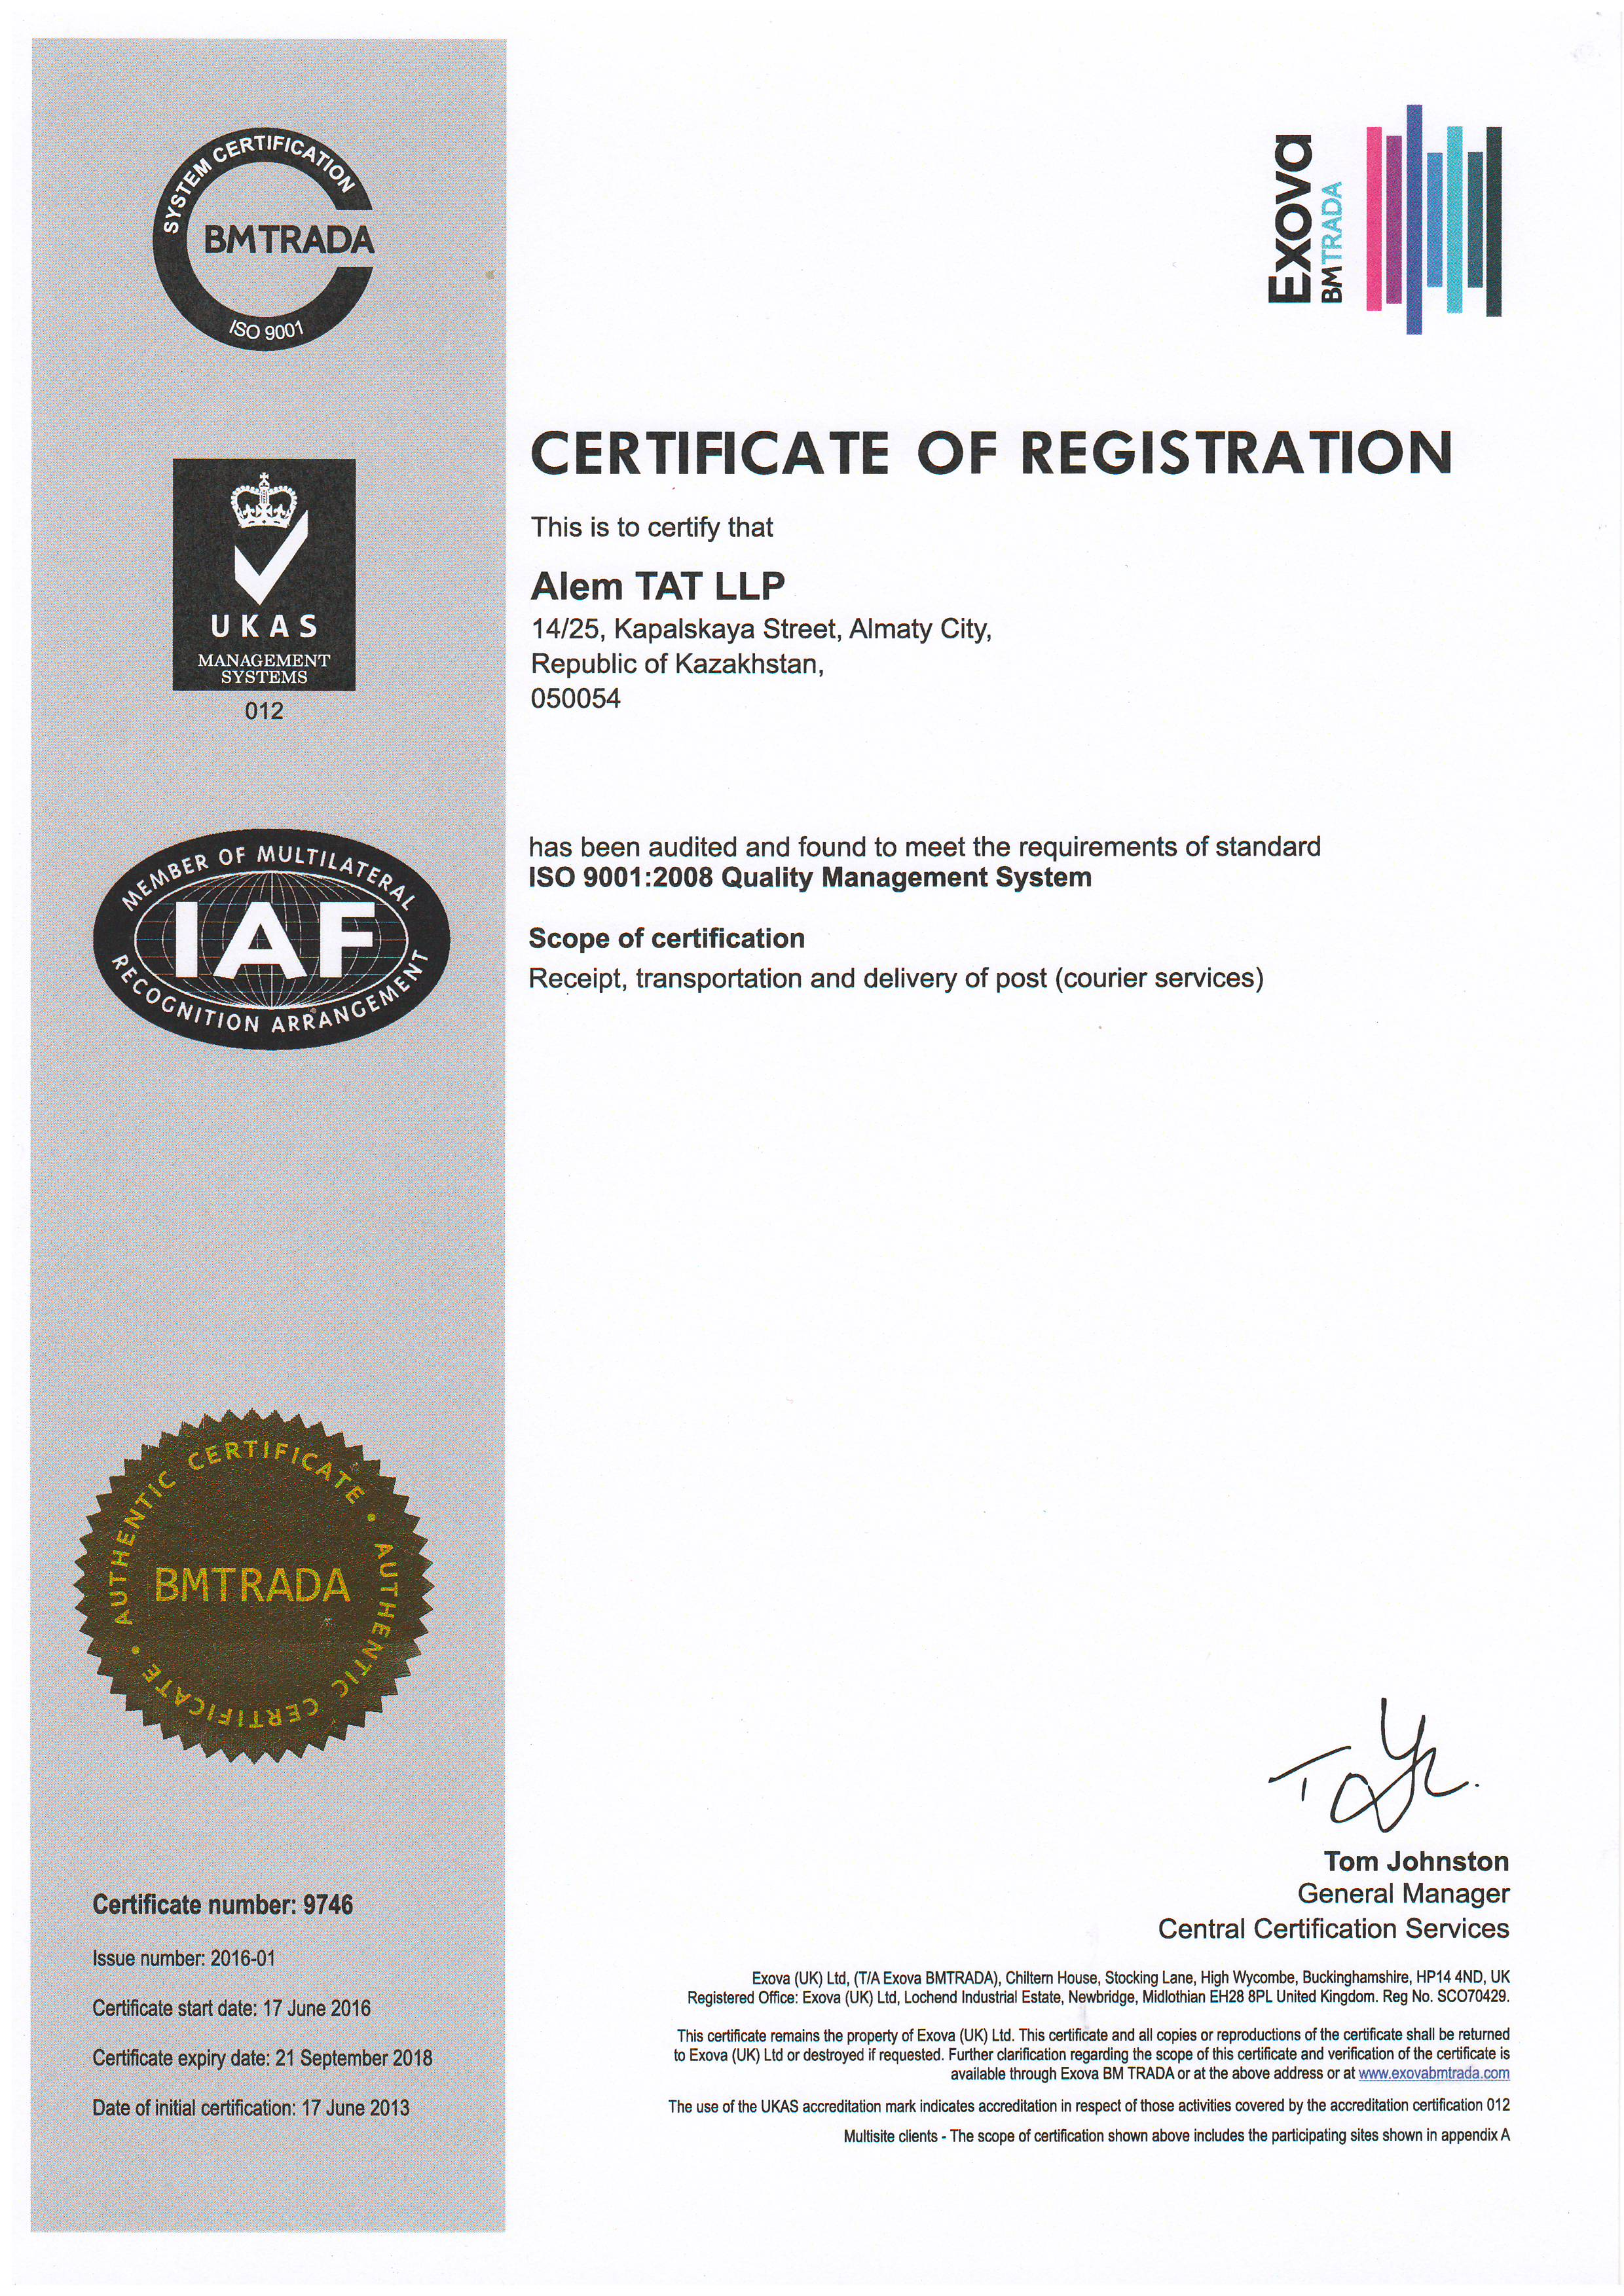 iso9001_certificate